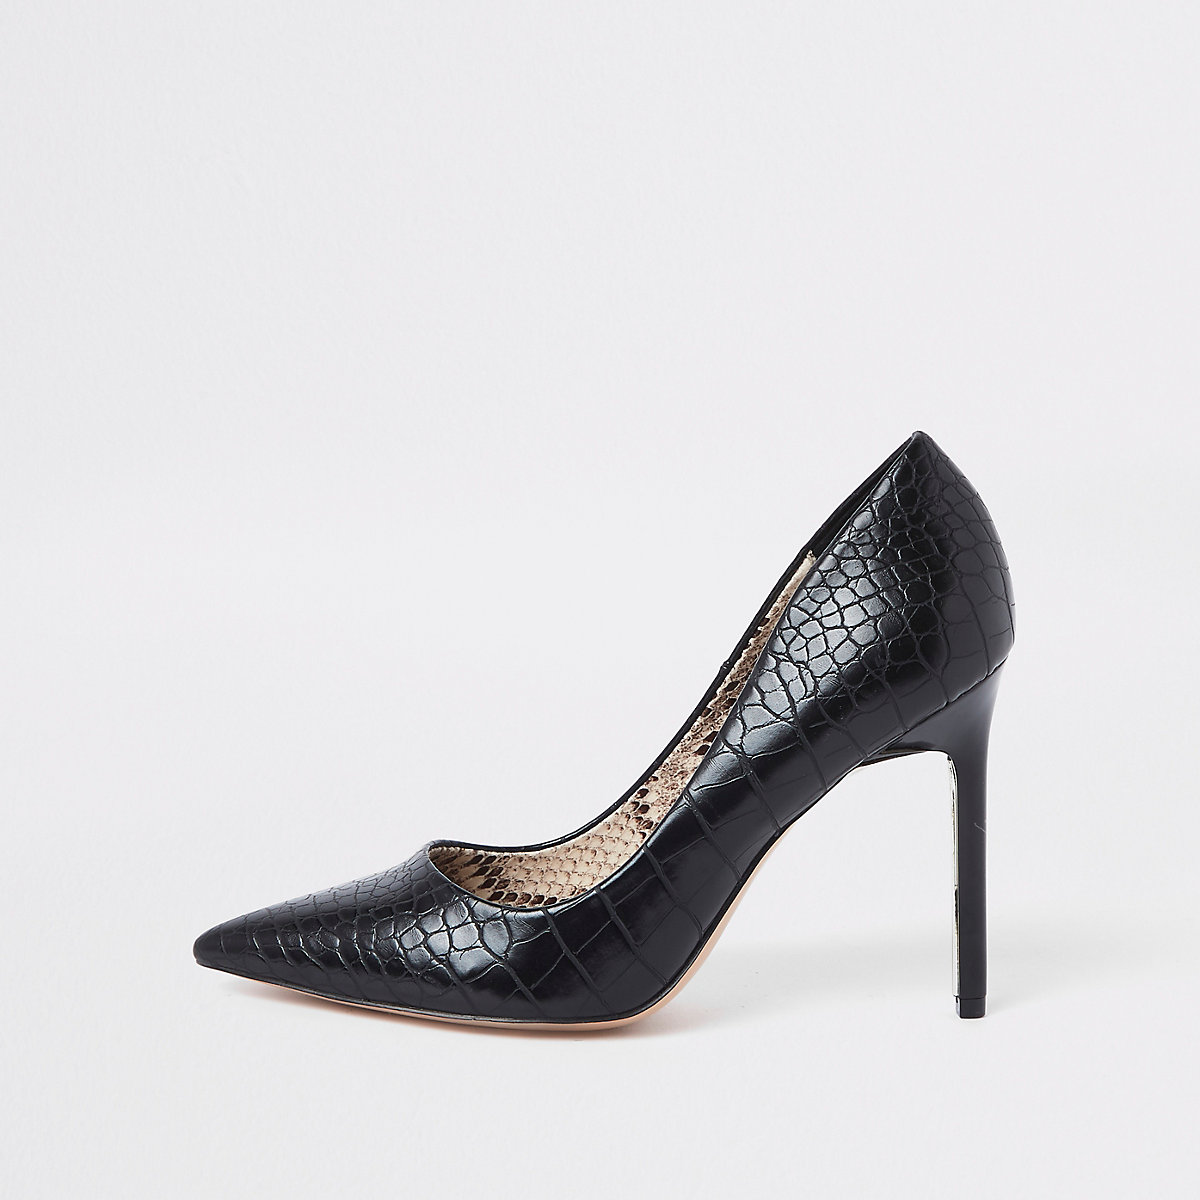 Black croc embossed pumps